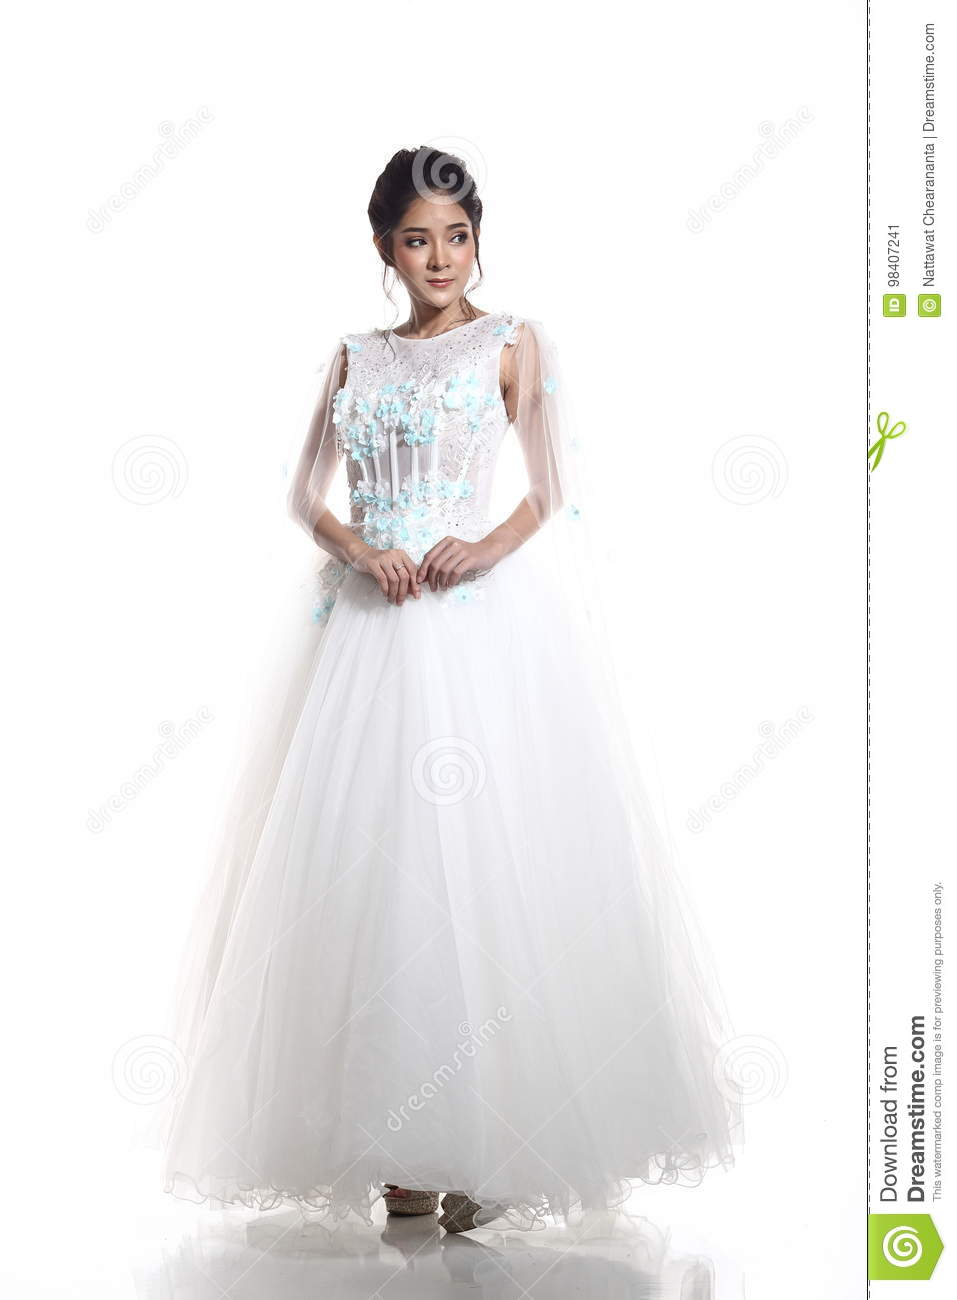 Full Length Body Lovely Asian Beautiful Woman Bride In White Wedding Blue Flower Gown Dress With Lace Black Hair Studio Lighting Background: Turquoise Black And White Wedding Dresses At Websimilar.org